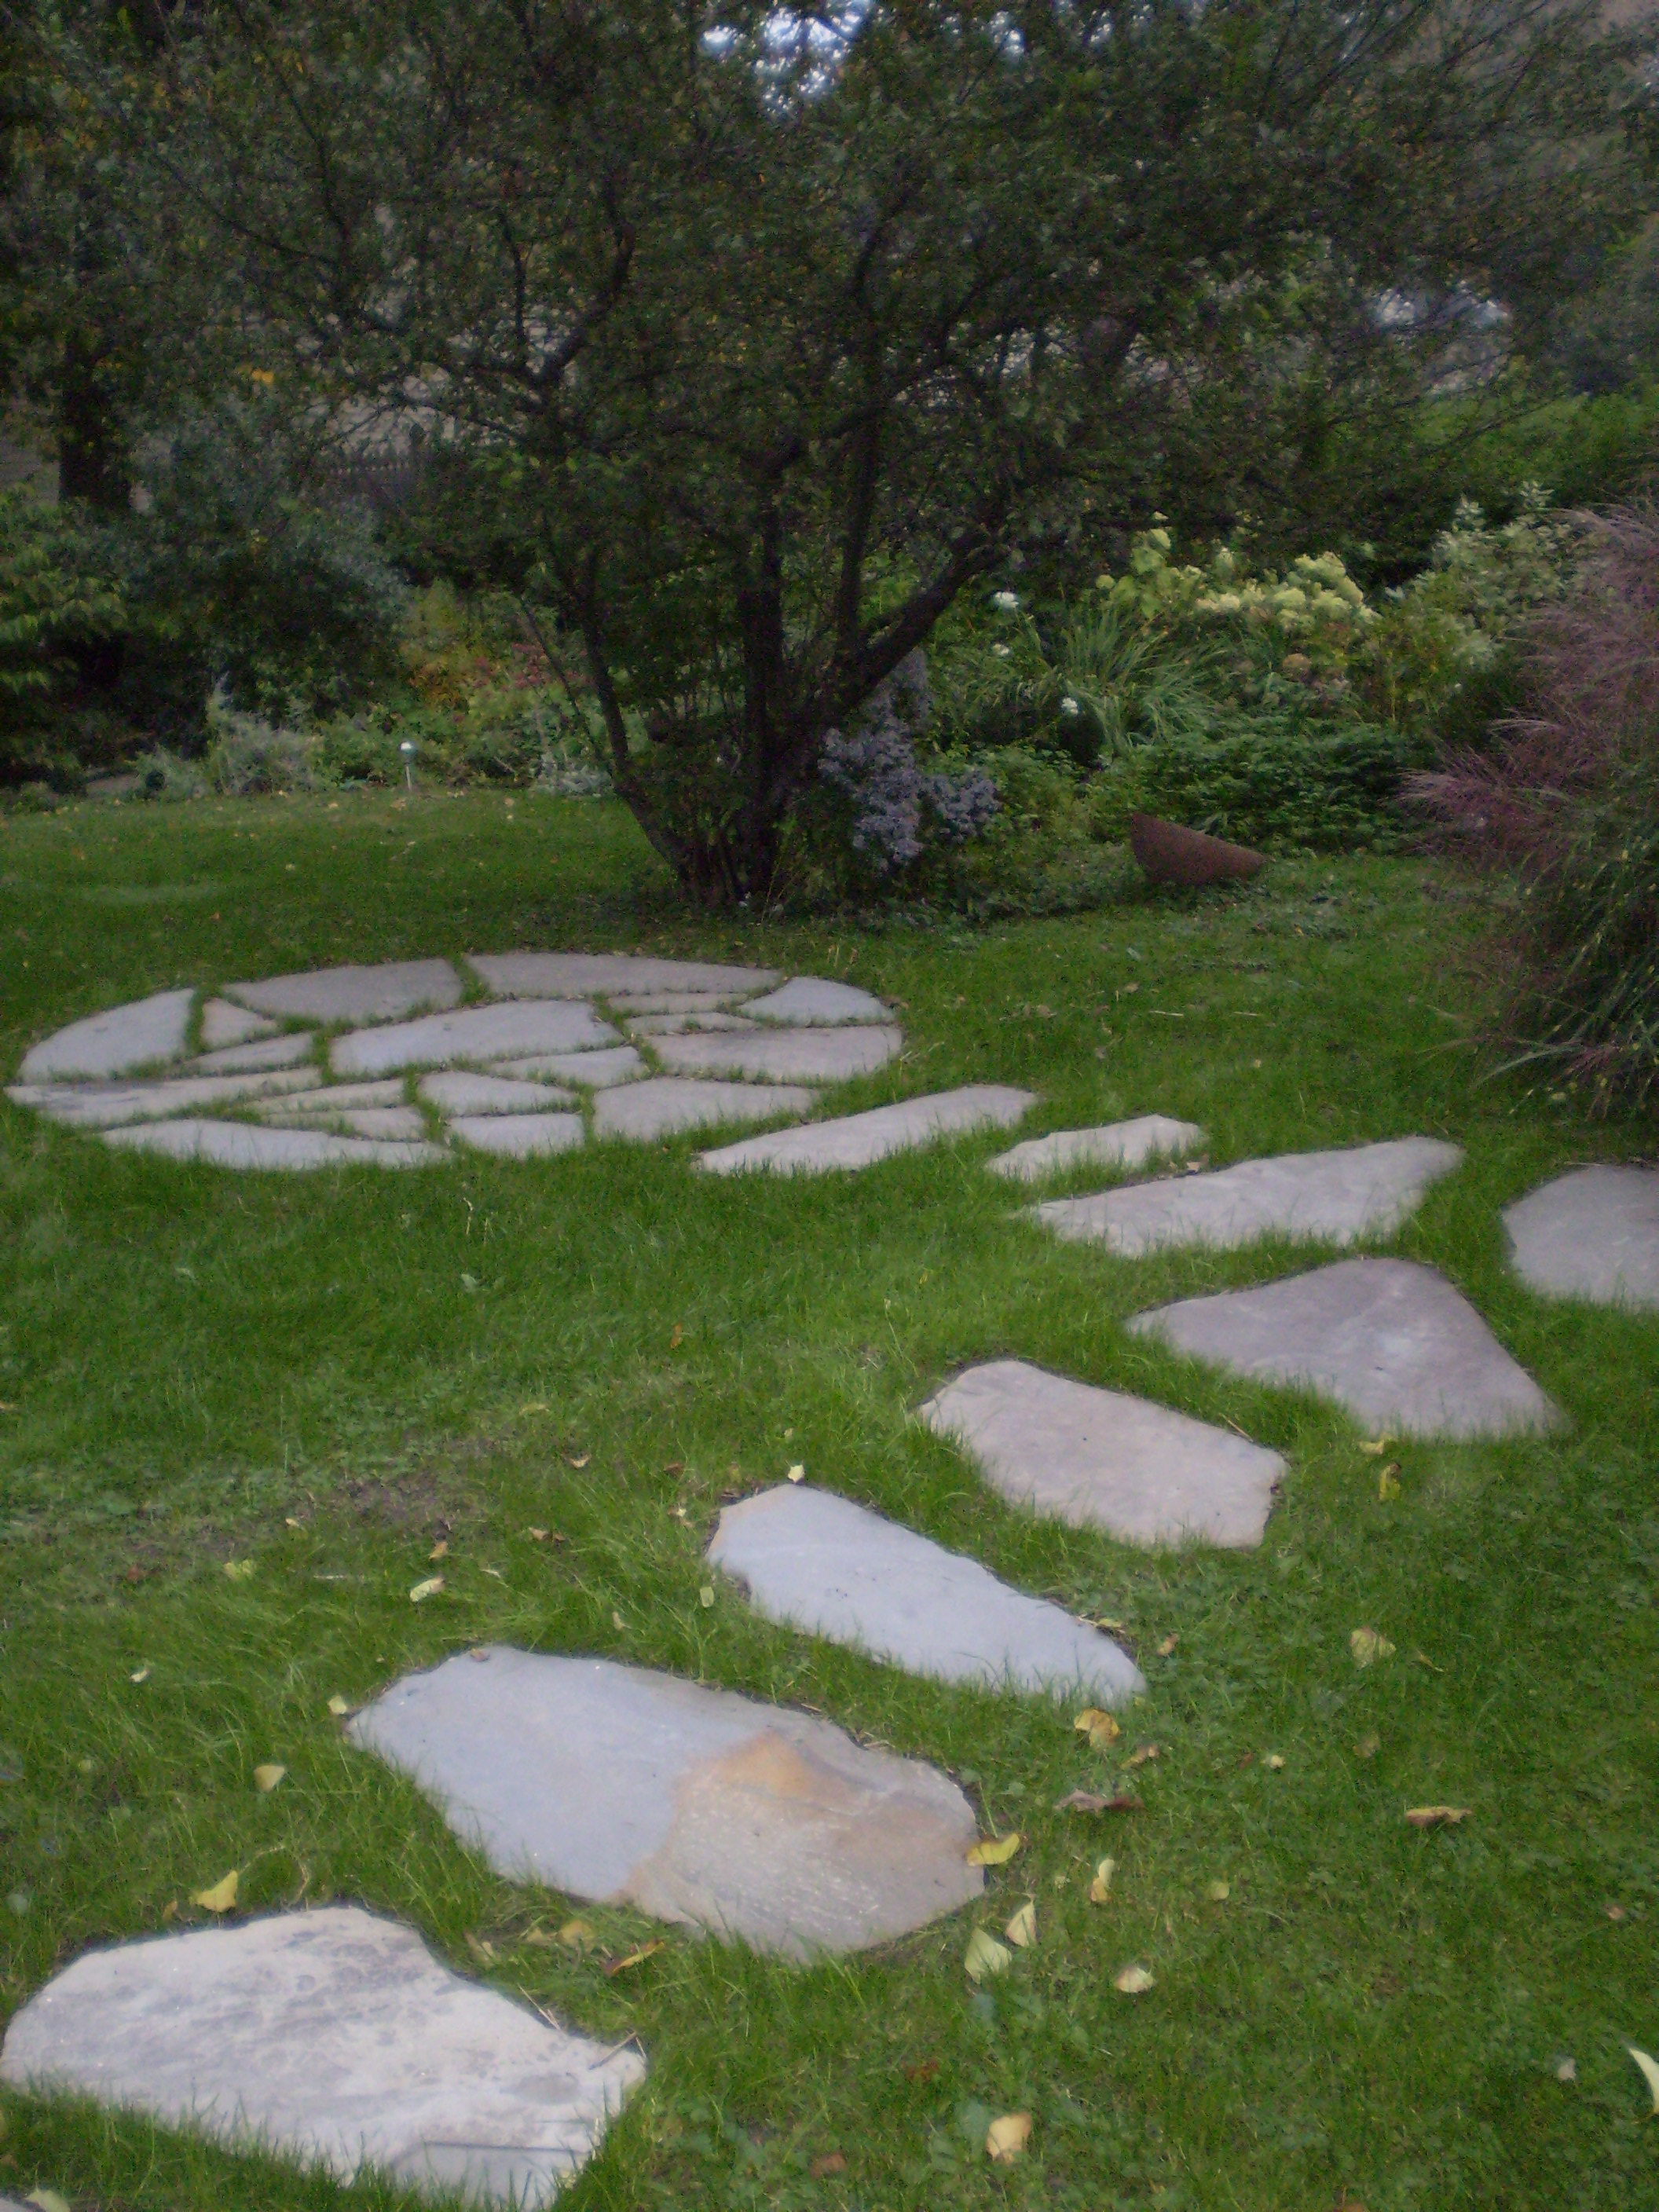 Landscaping Stones Portland Maine : Hardscaping perennial stone tea garden patio portland maine